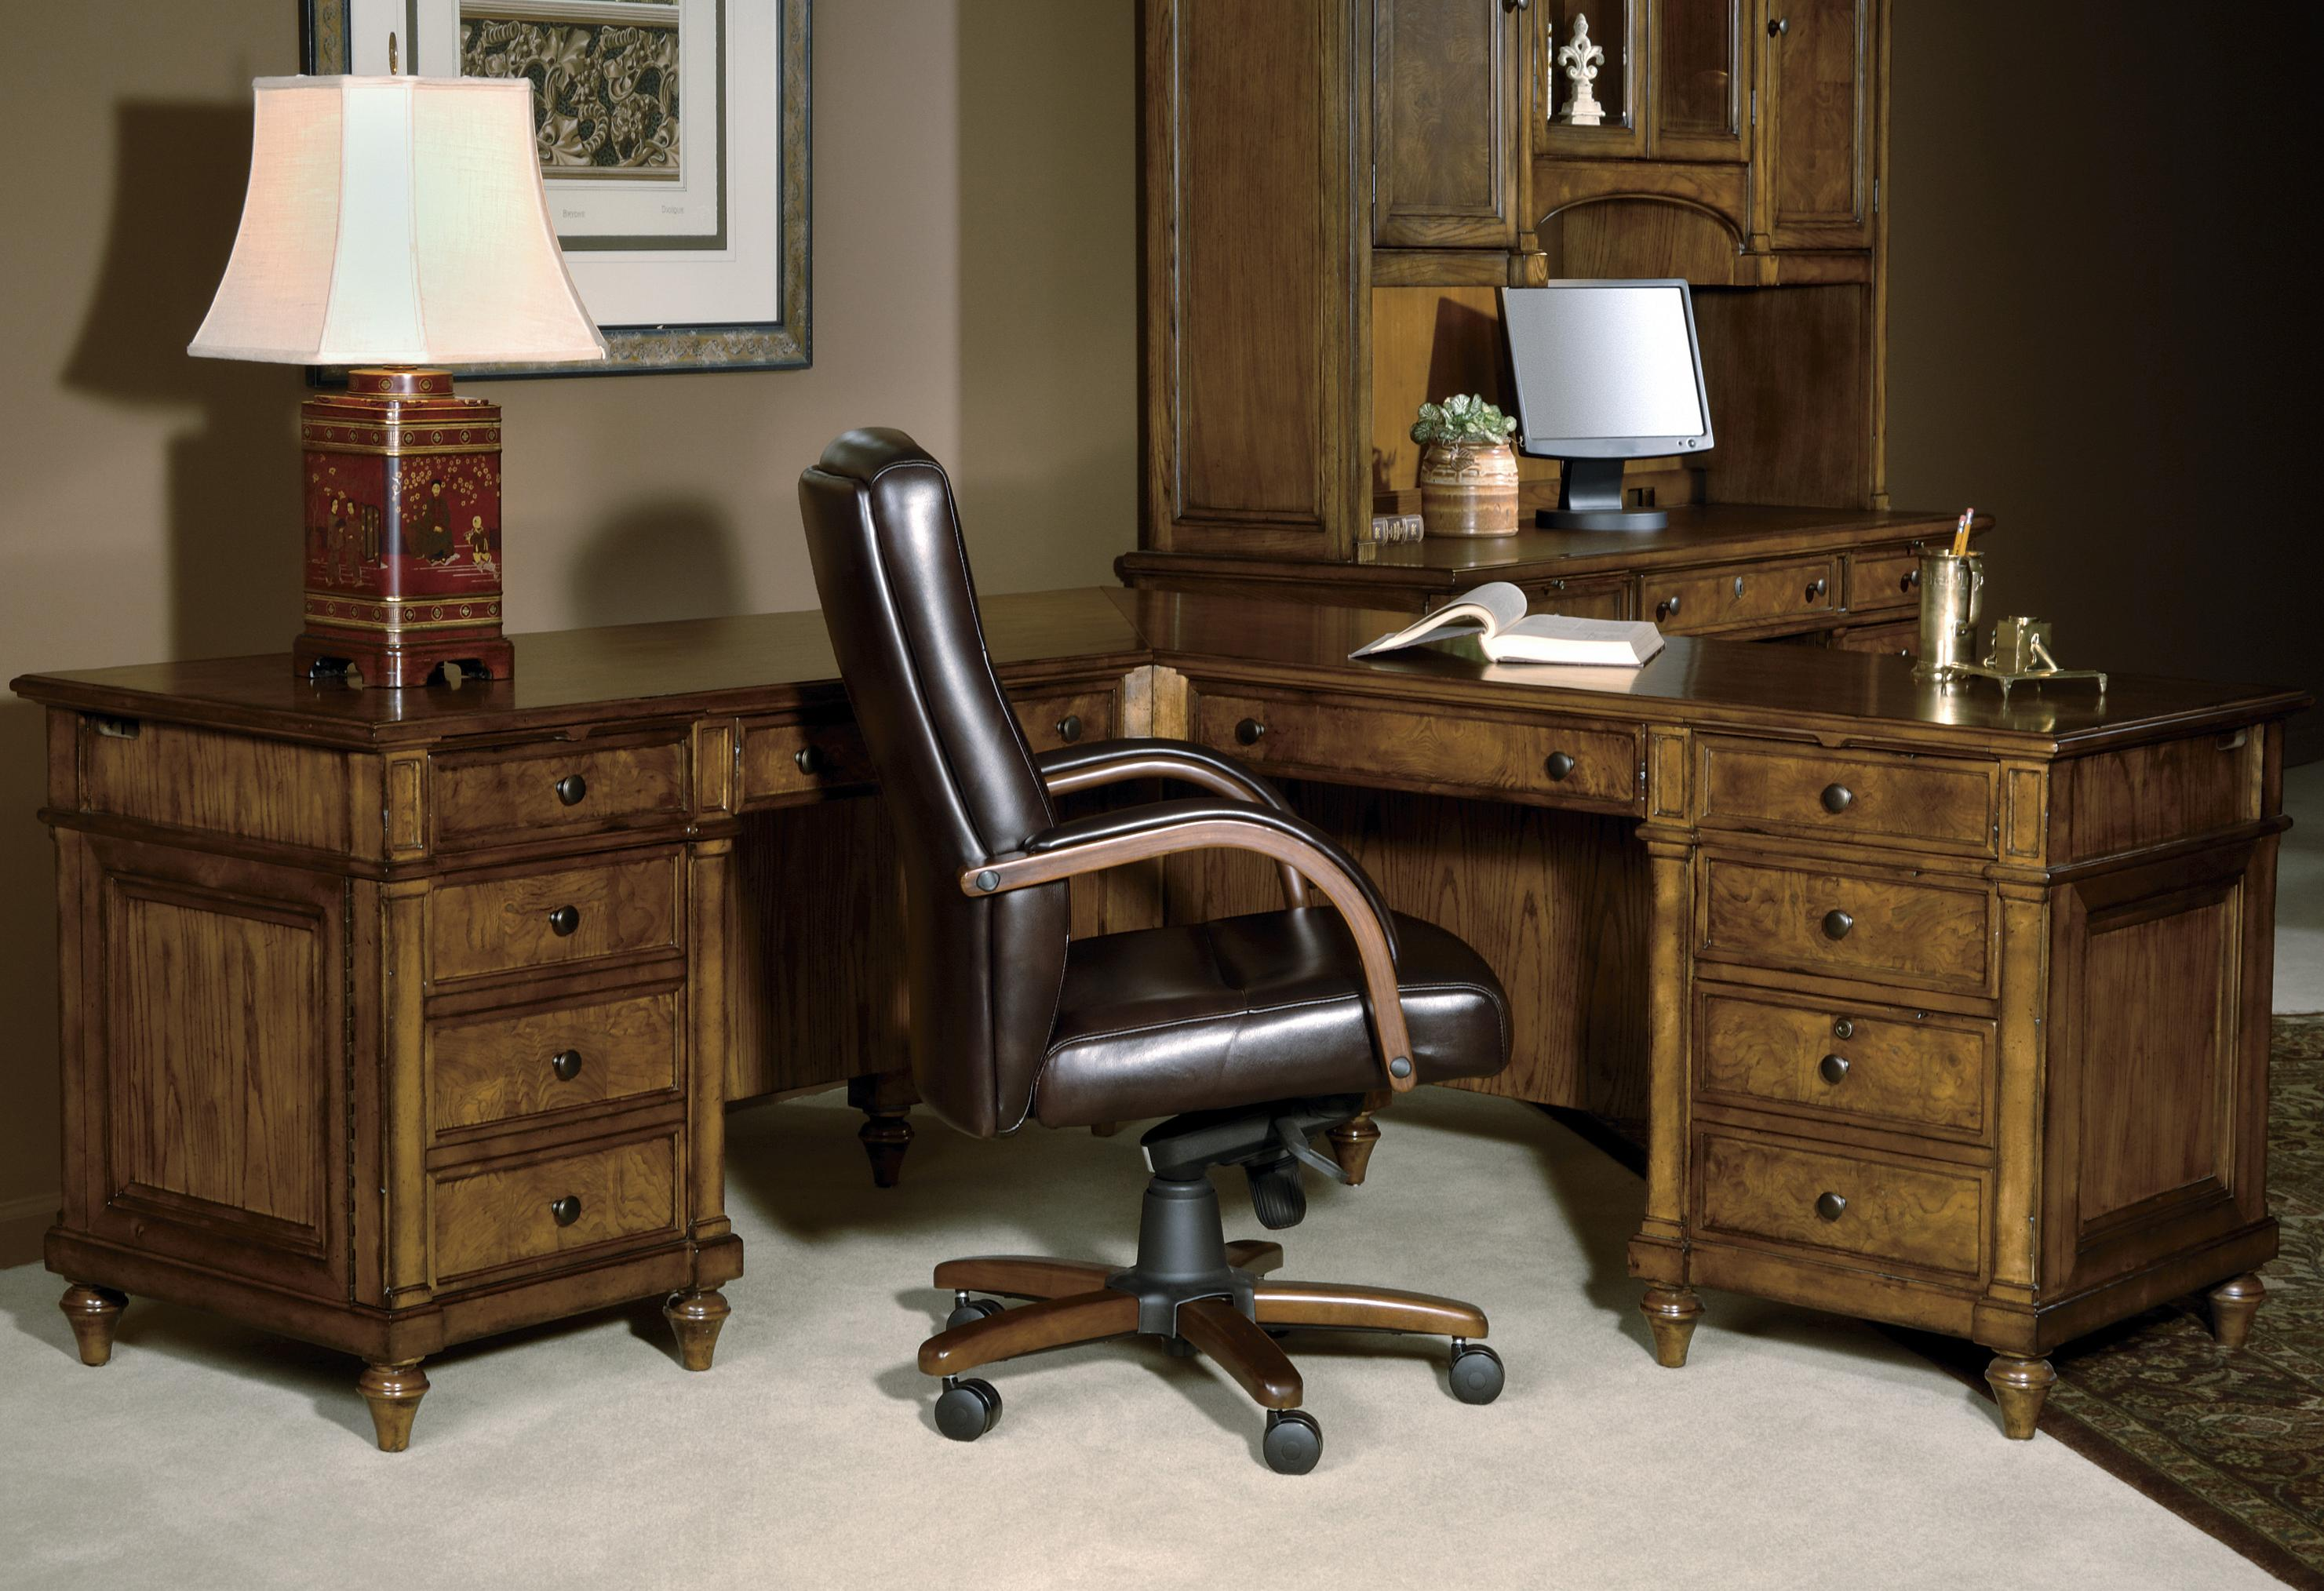 Executive L Shaped Desk 7 9000 Executive L Desk By Hekman At Olinde S Furniture